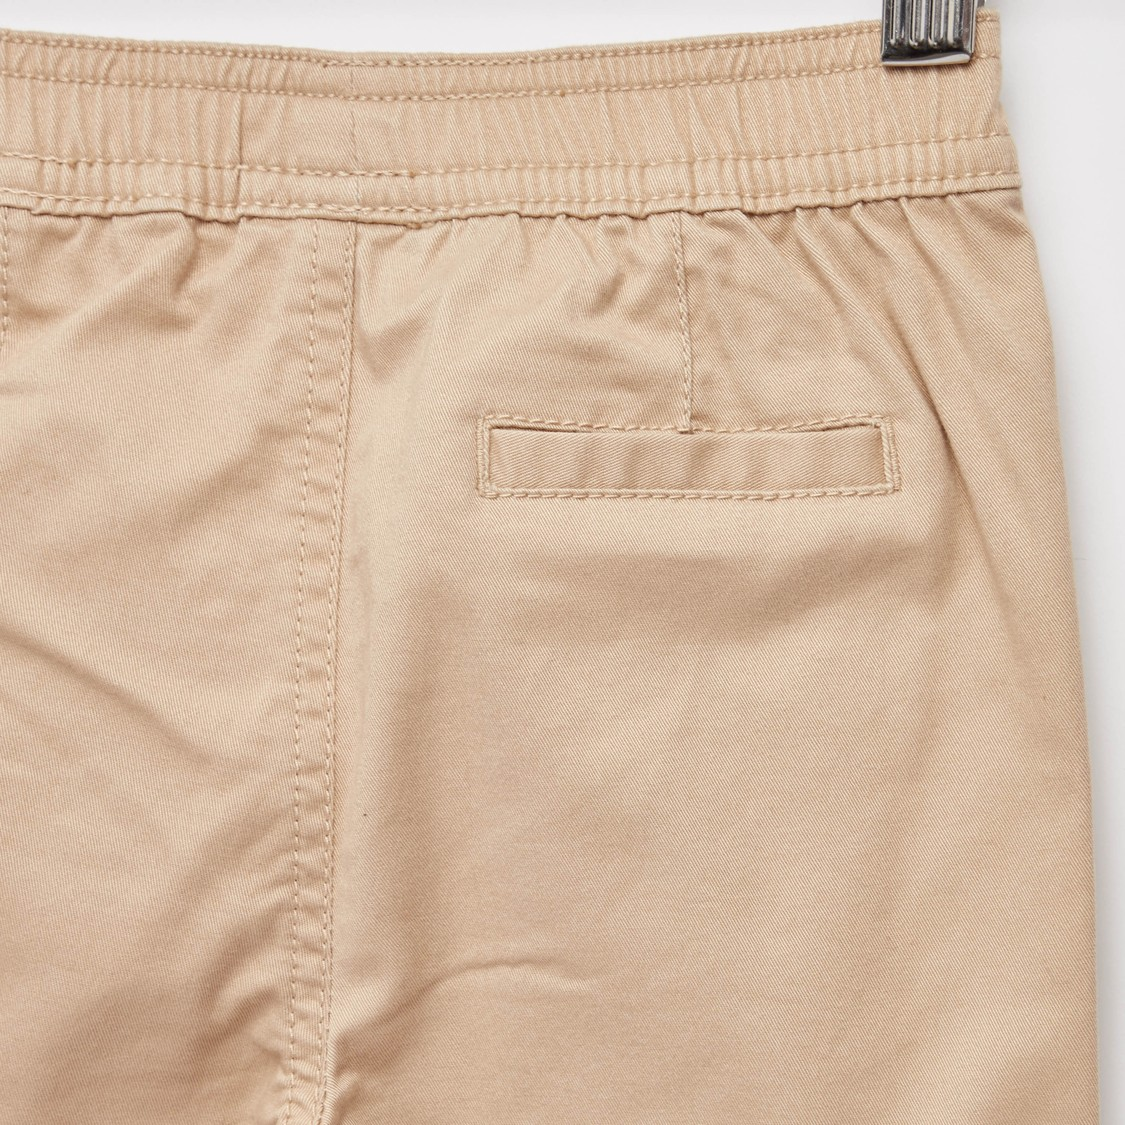 Full Length Solid Jog Pants with Pocket Detail and Elasticised Waistband